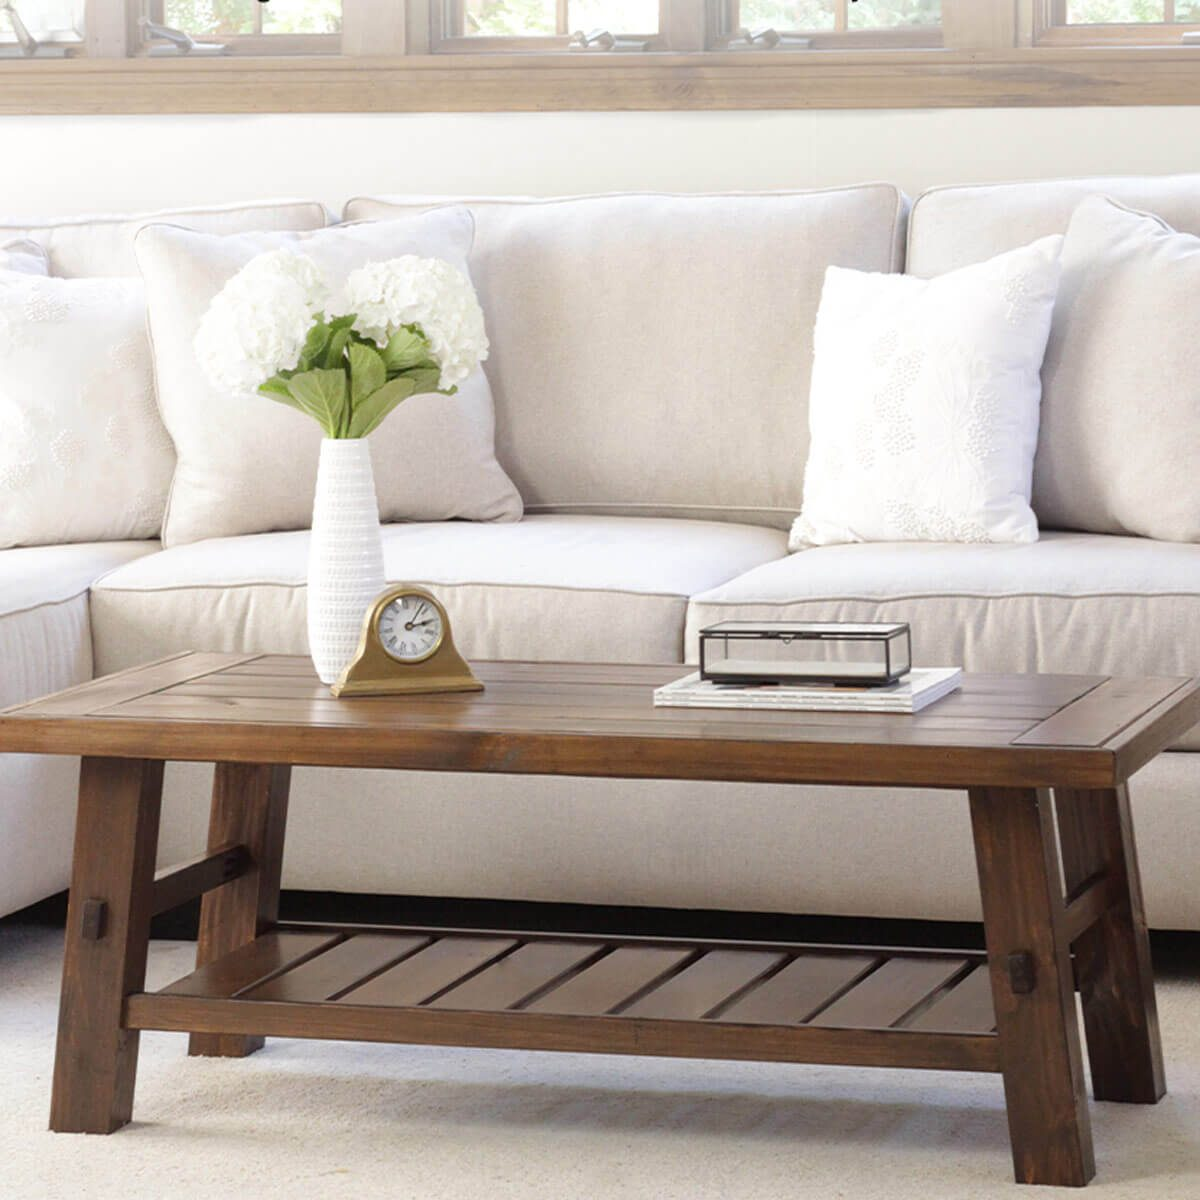 Sofa Workshop Ebay Outlet 14 Super Cool Homemade Coffee Table Ideas Unusual Coffee Tables